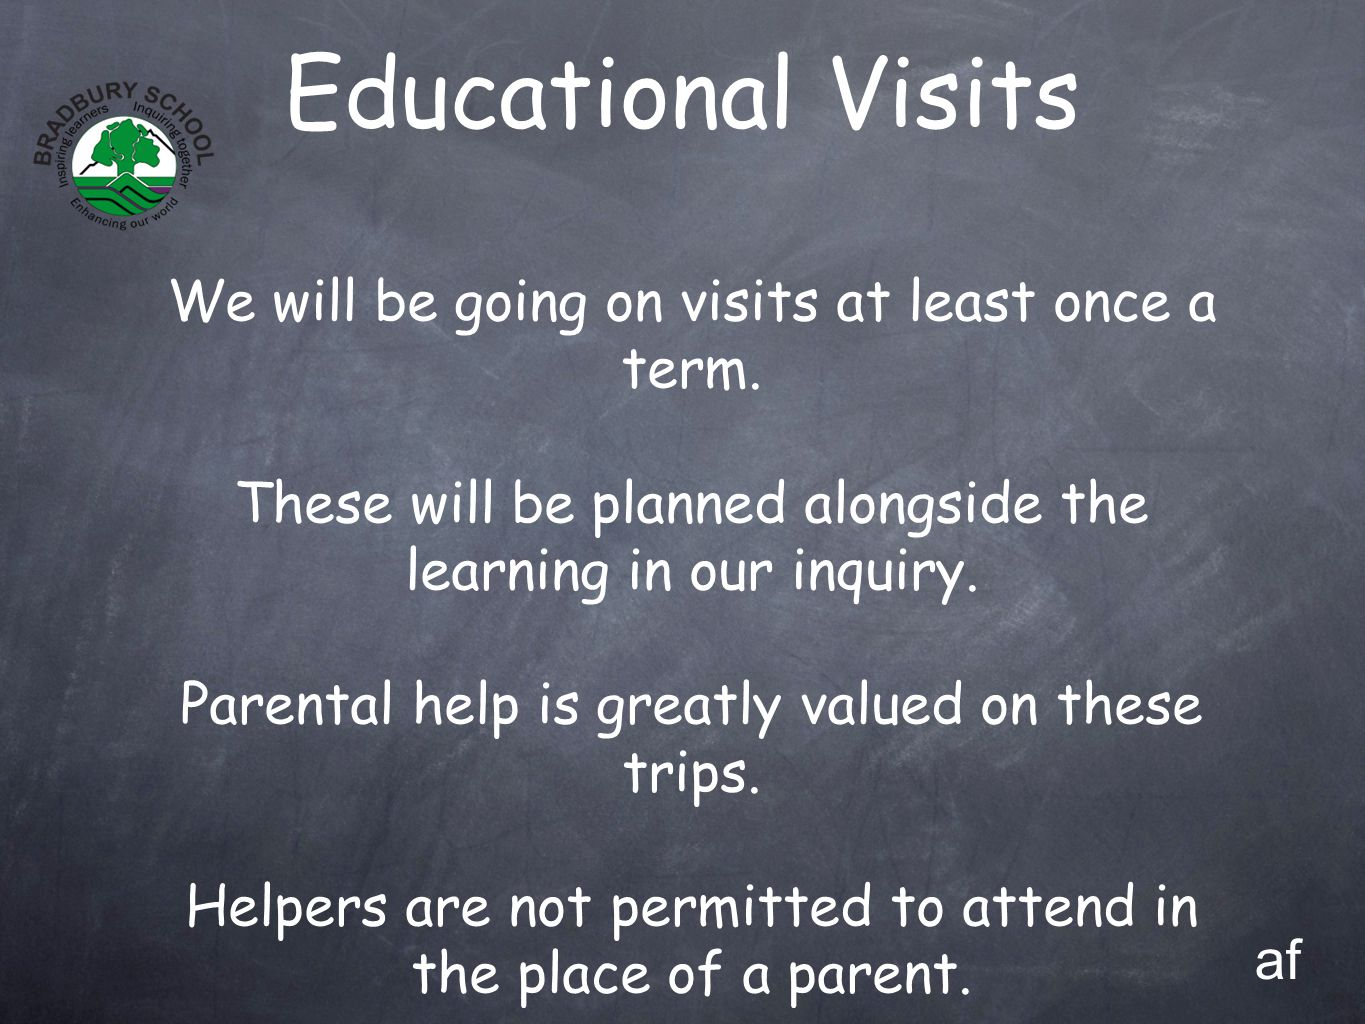 Educational Visits We will be going on visits at least once a term. These will be planned alongside the learning in our inquiry. Parental help is grea